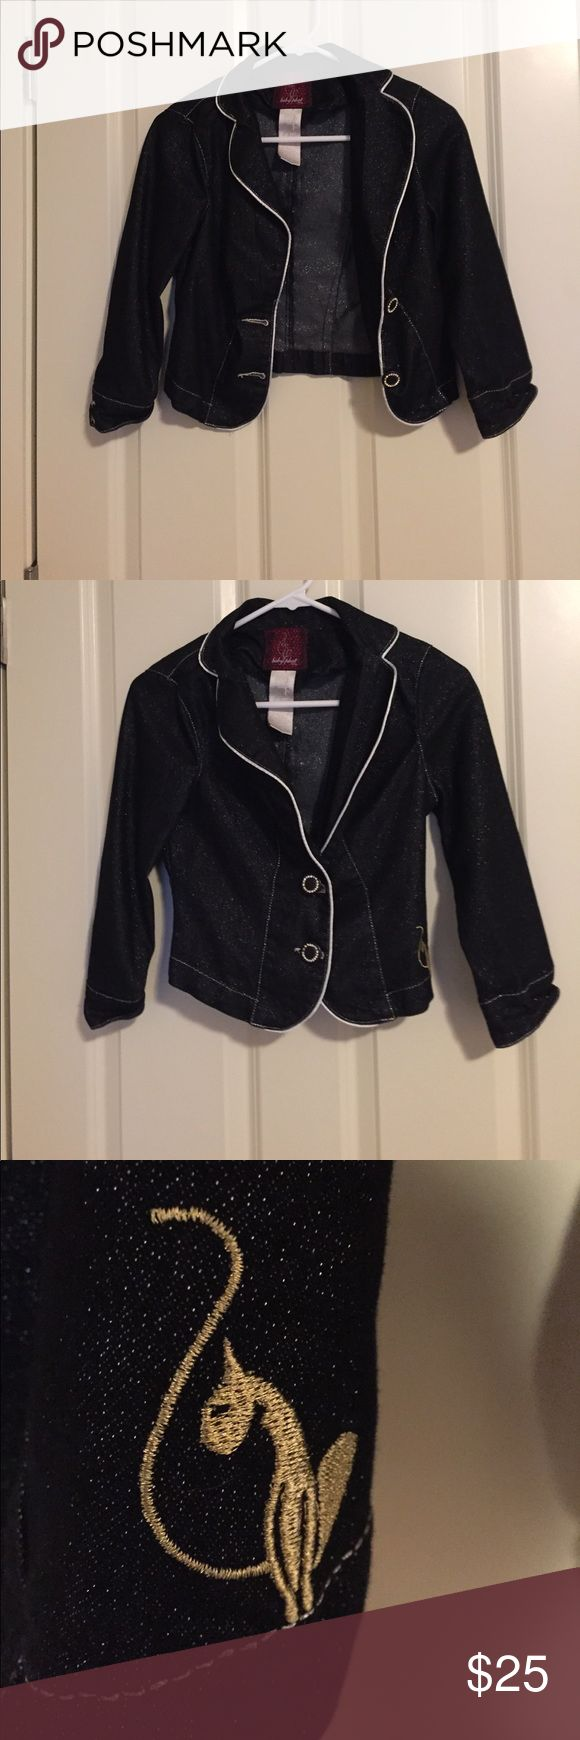 Sparkly Black Baby Phat Blazer Sparkly and stunning! Has a normal amount of loose threads from handling (worn maybe three times). All buttons and rhinestones in the buttons are present. Bundle to save even more! Let me know if you have any questions, happy poshing! ❤️ Baby Phat Jackets & Coats Blazers